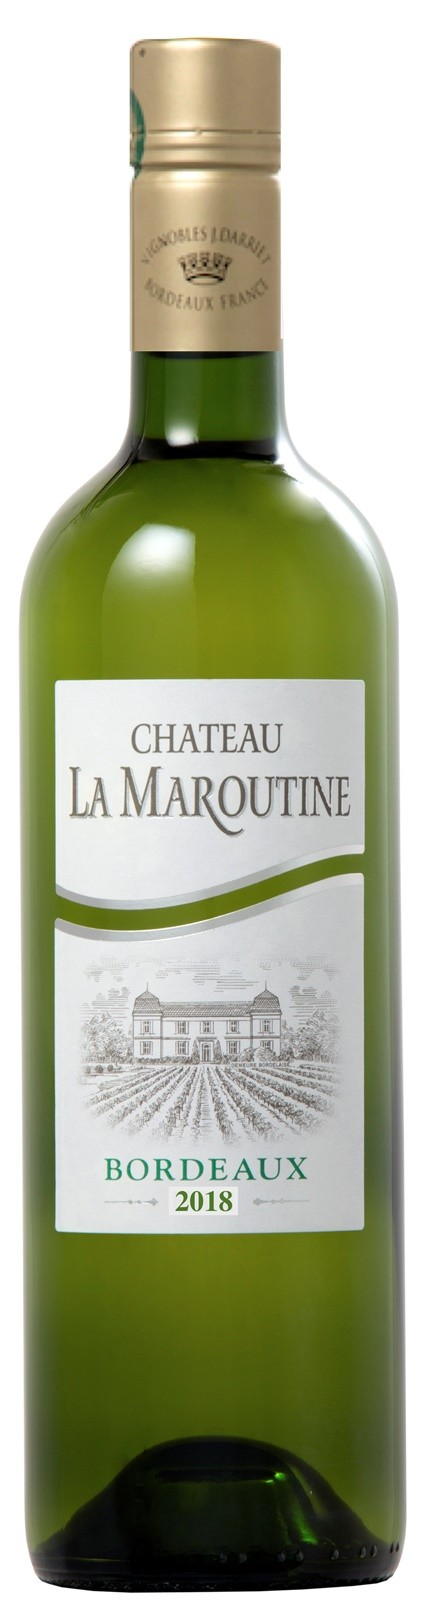 Chateau la Maroutine white 2018, 0,375 l, Bordeaux AOC - SCREWCAP